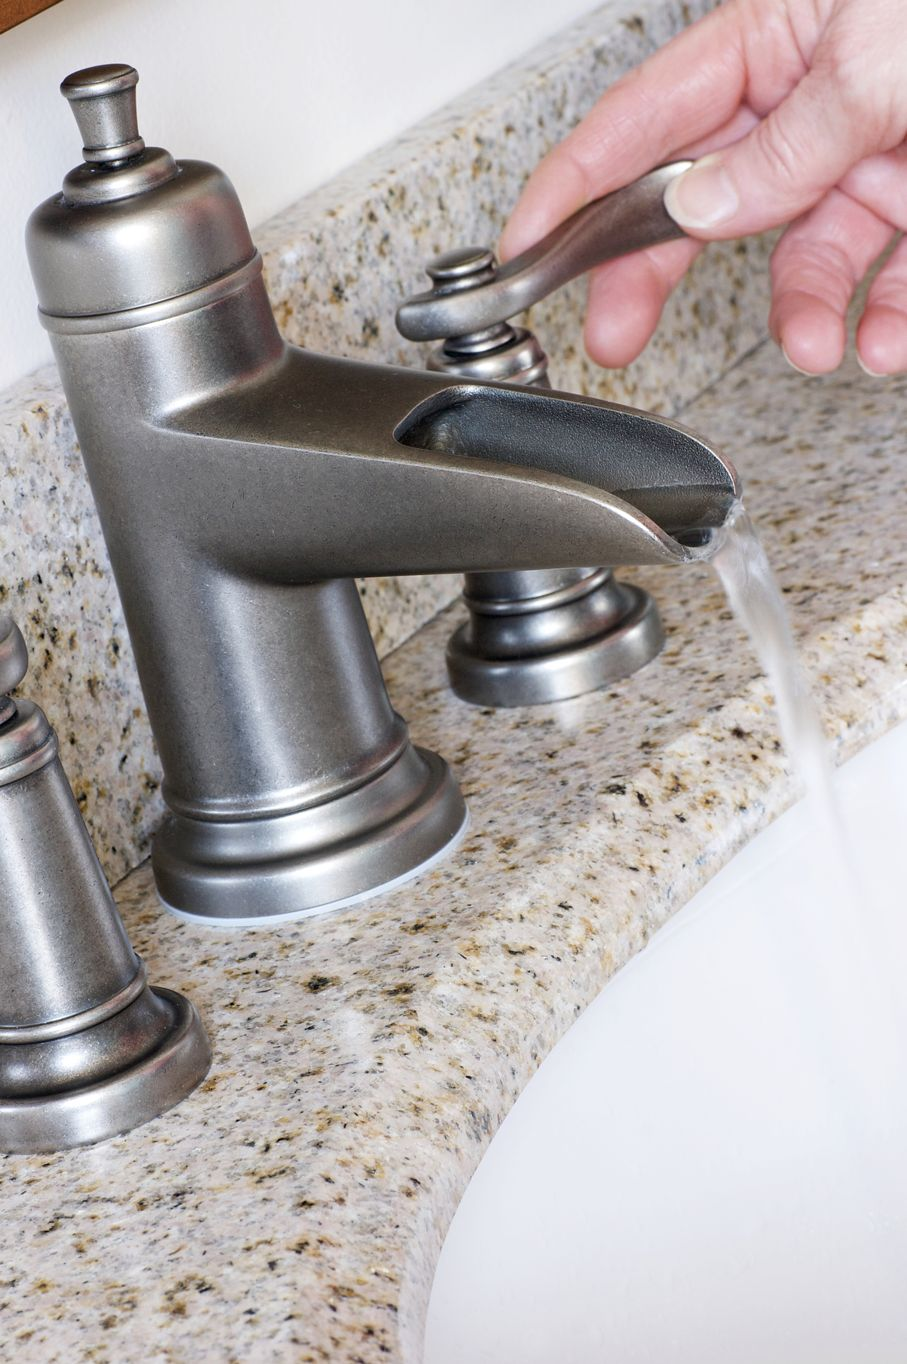 Modern Bathroom Taps in Brushed Nickel